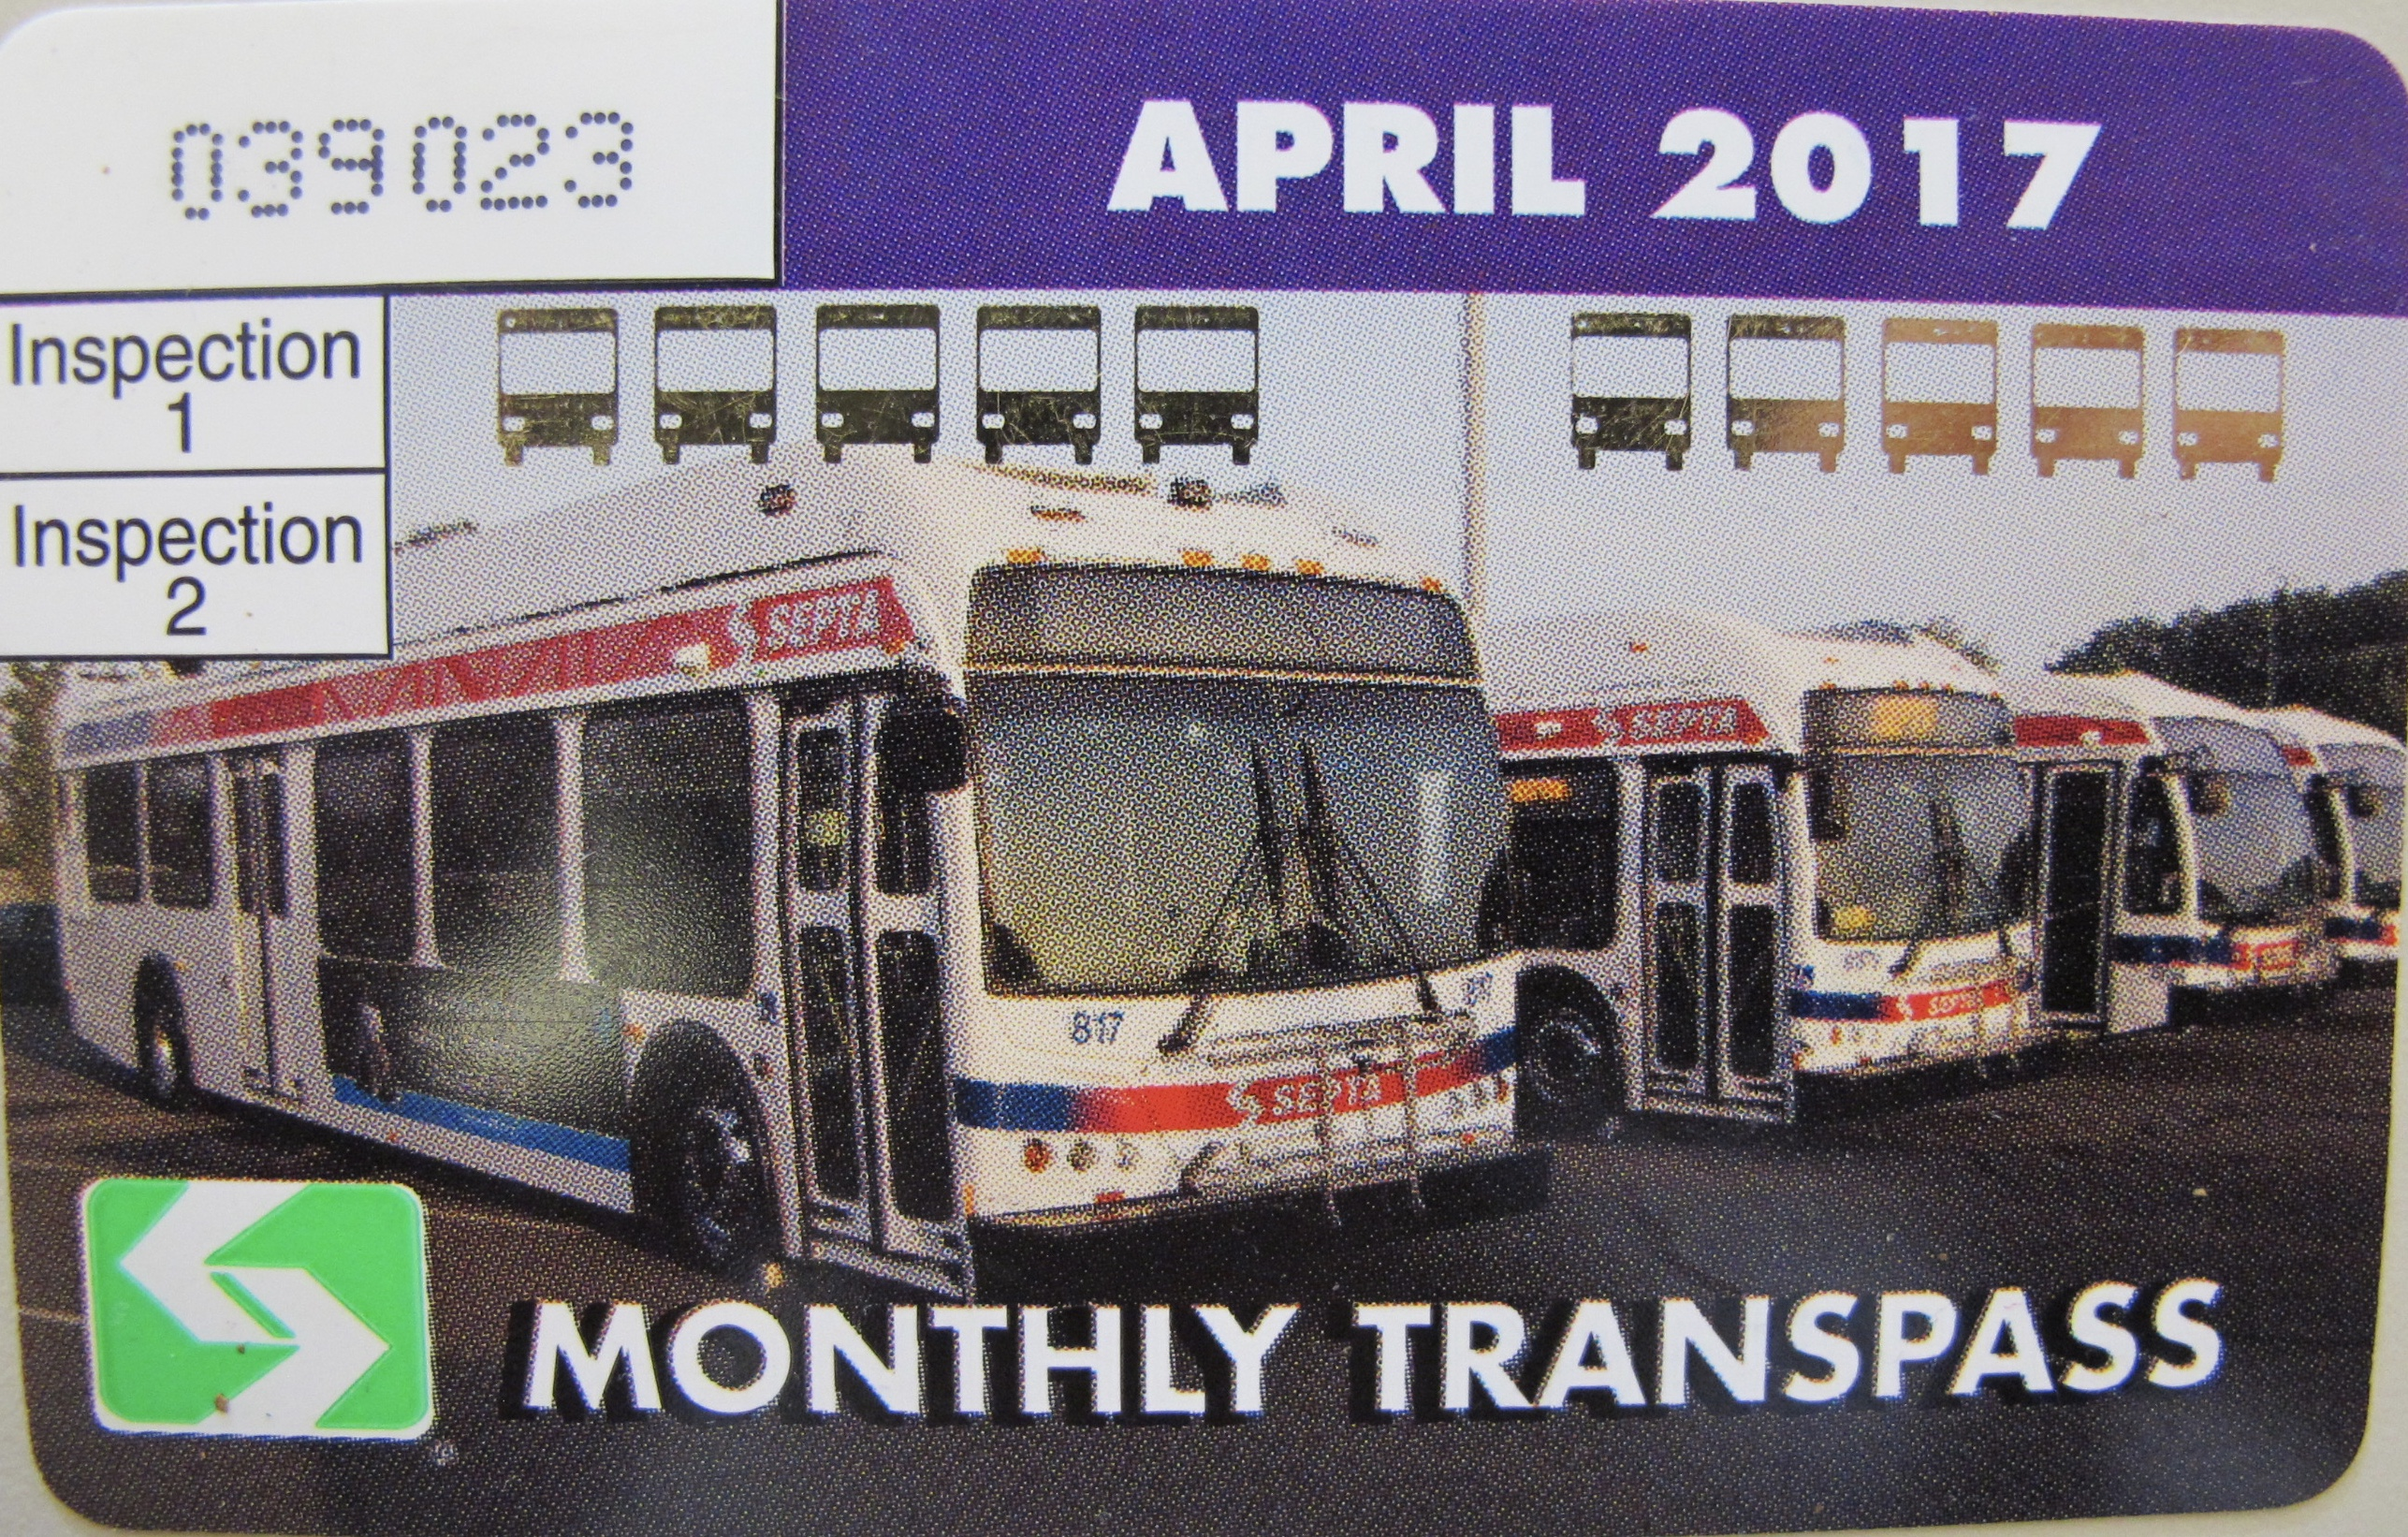 Monthly Transpasses no longer have gendered stickers.